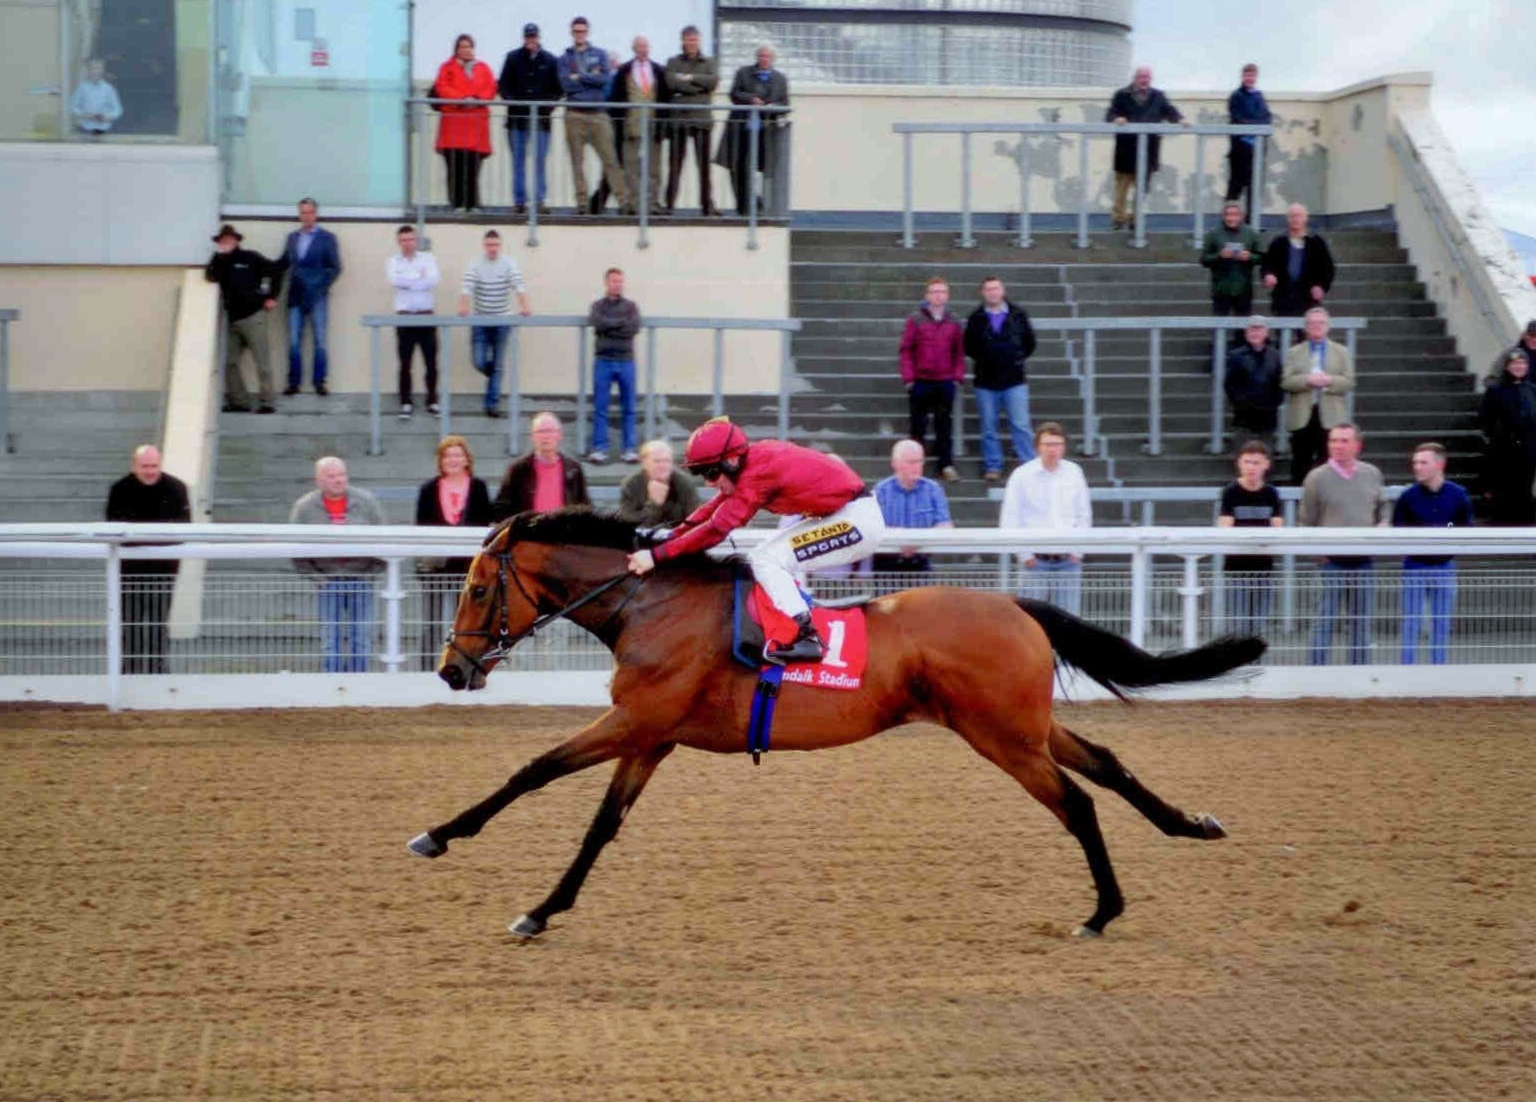 FOG OF WAR lands his first win of 2015 in good style at Dundalk on Friday May 15th